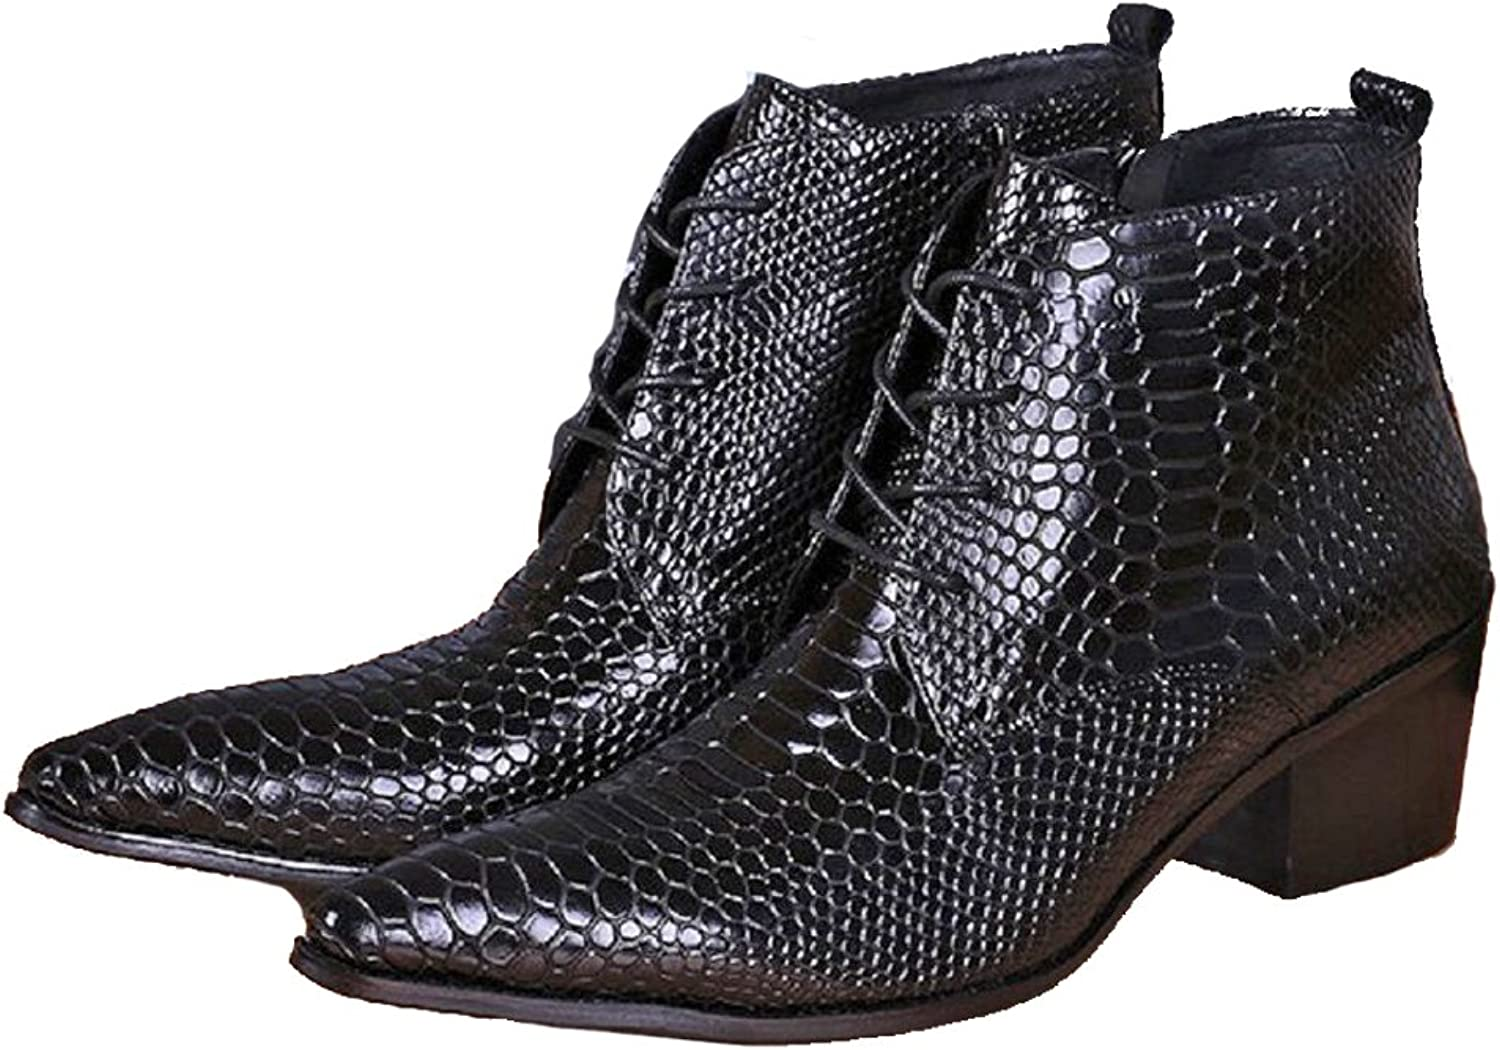 Cover Plus Size 5-12 New Black Alligator Print Genuine Leather Dress Zip Ankle Boots Mens shoes